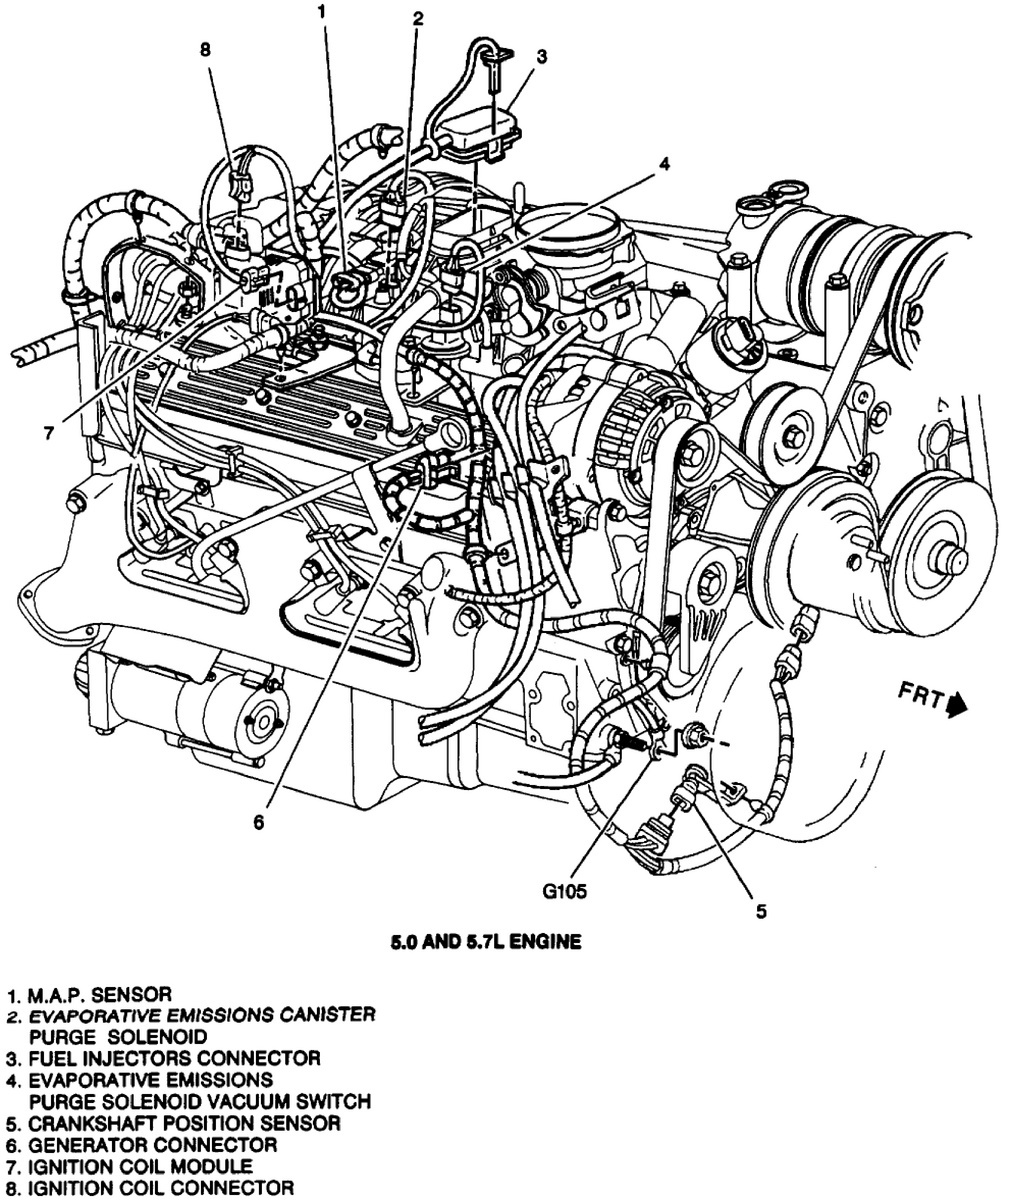 2011 Chevy Suburban Engine Diagram - Wiring Diagram All on